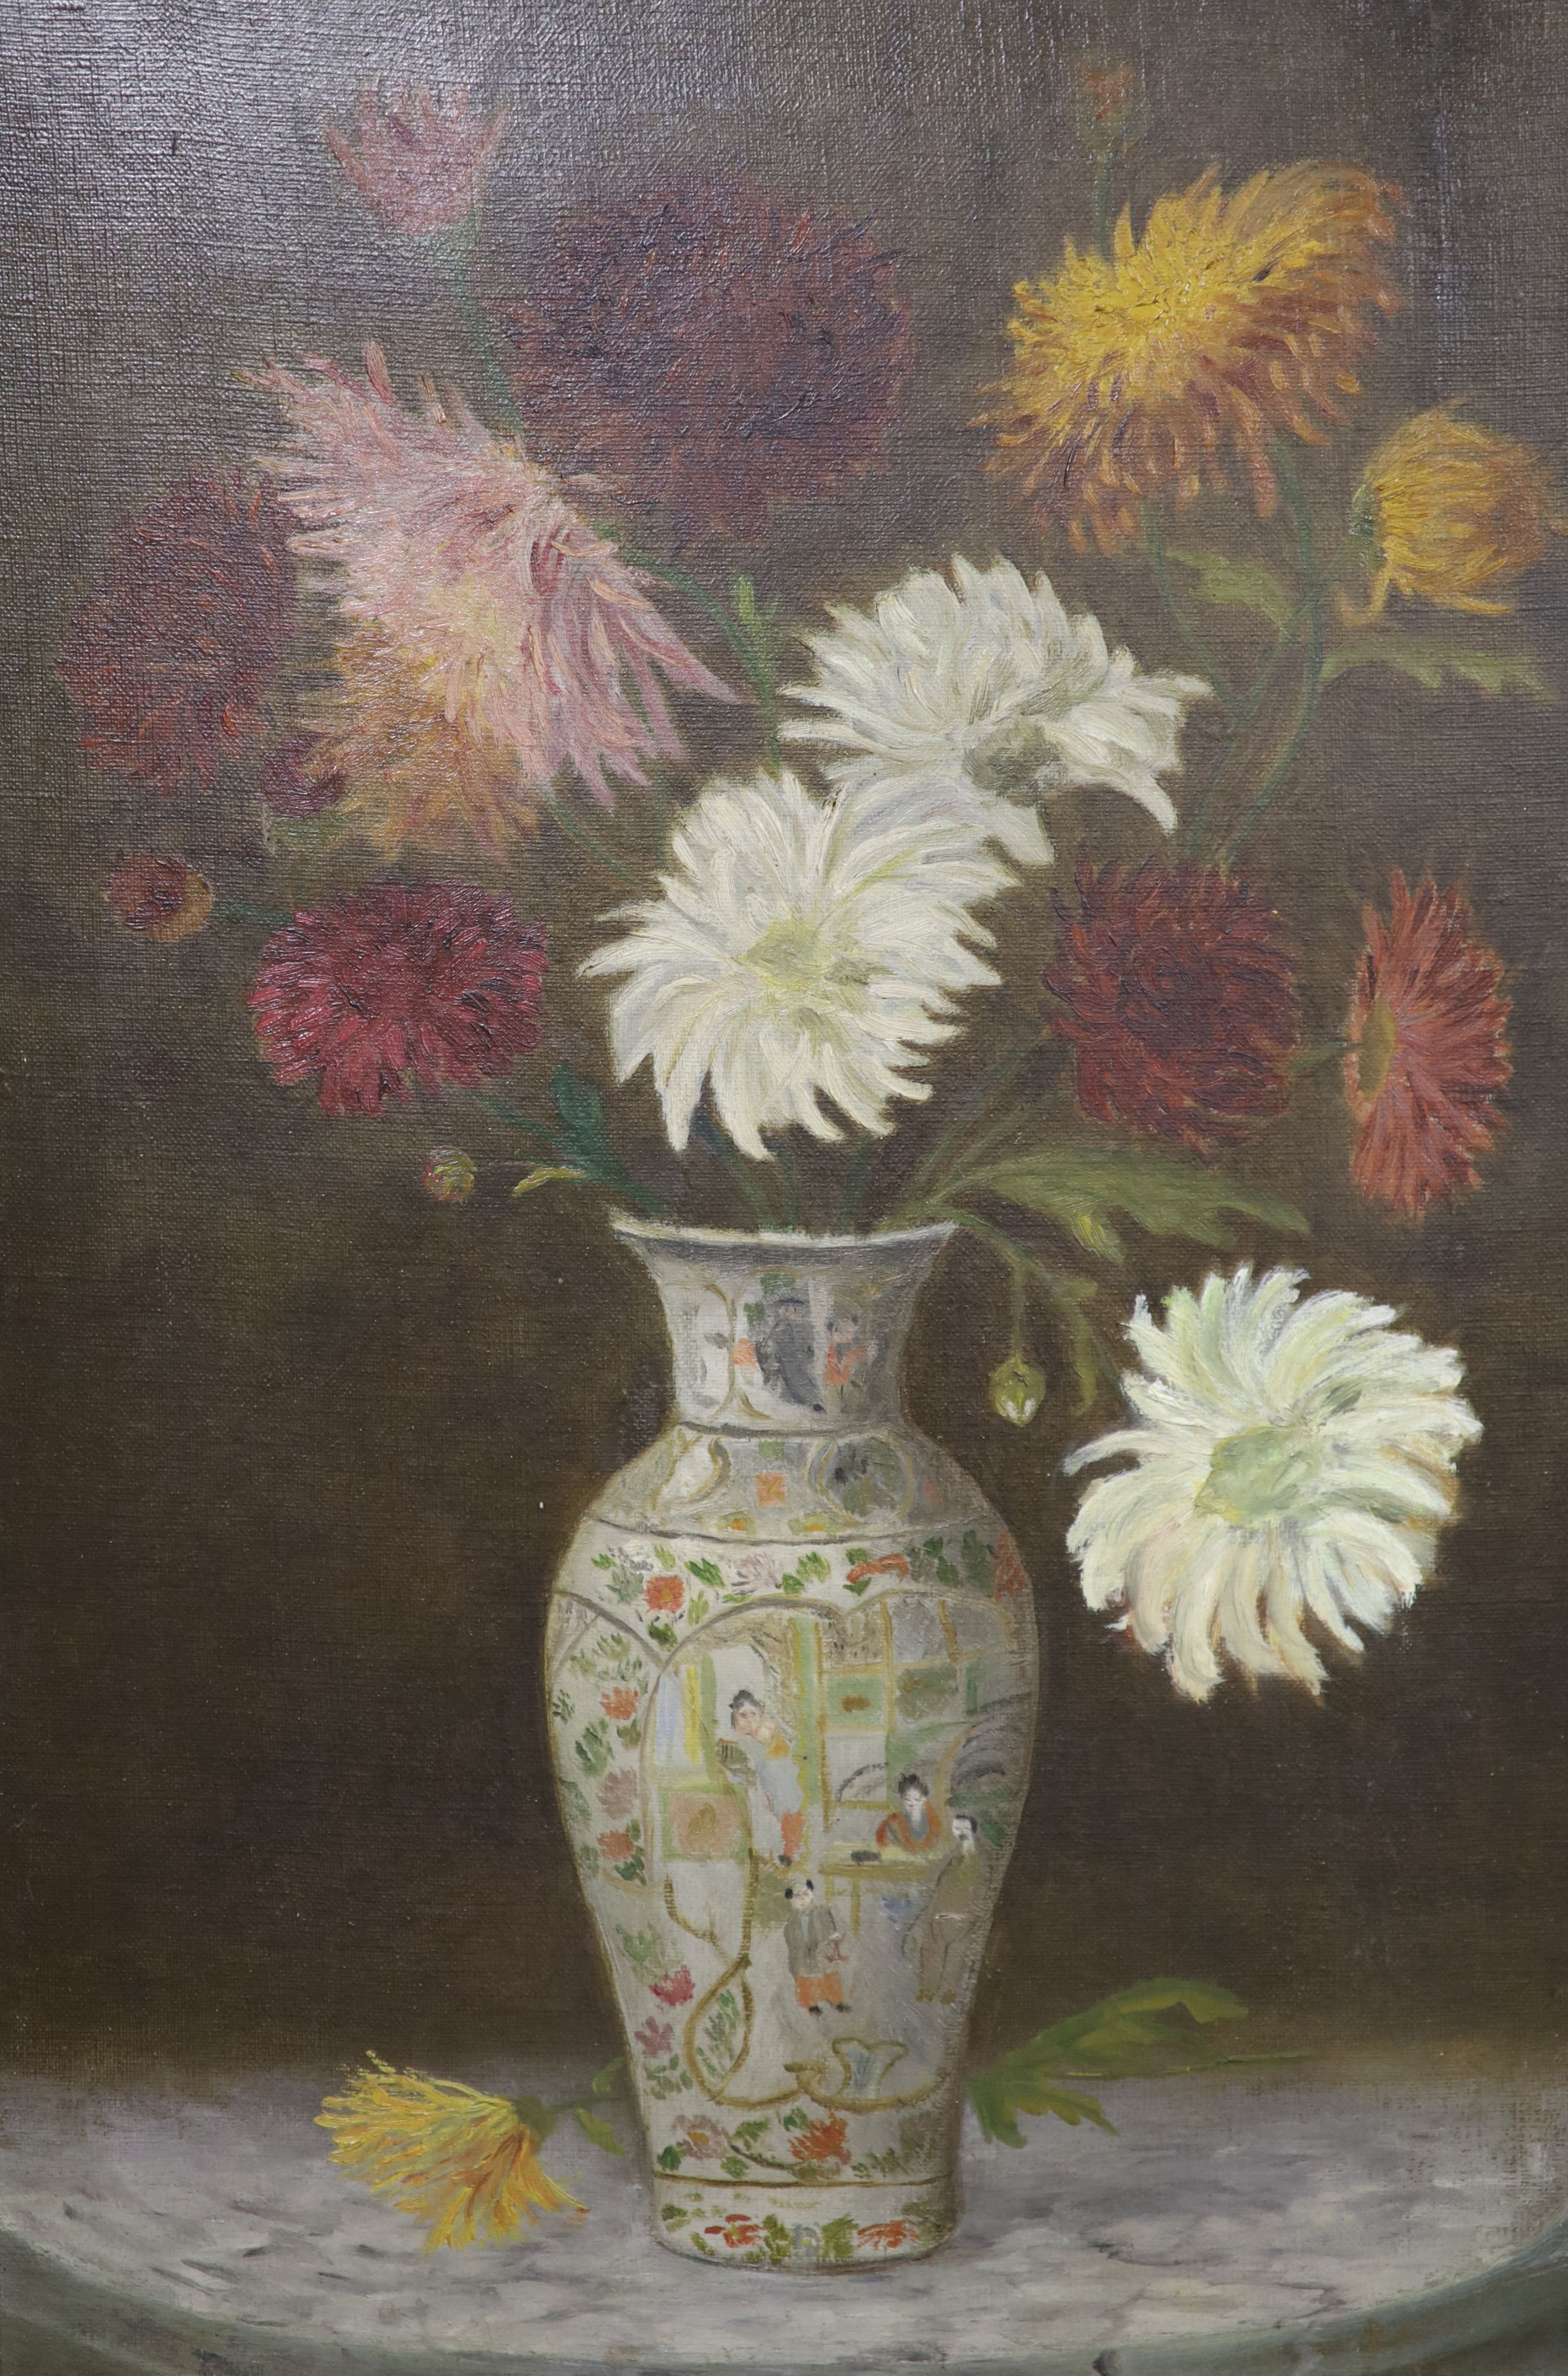 English school c.1900, three oils on canvas, Still life of flowers in a Chinese vase, 52 x 35cm, - Image 2 of 5